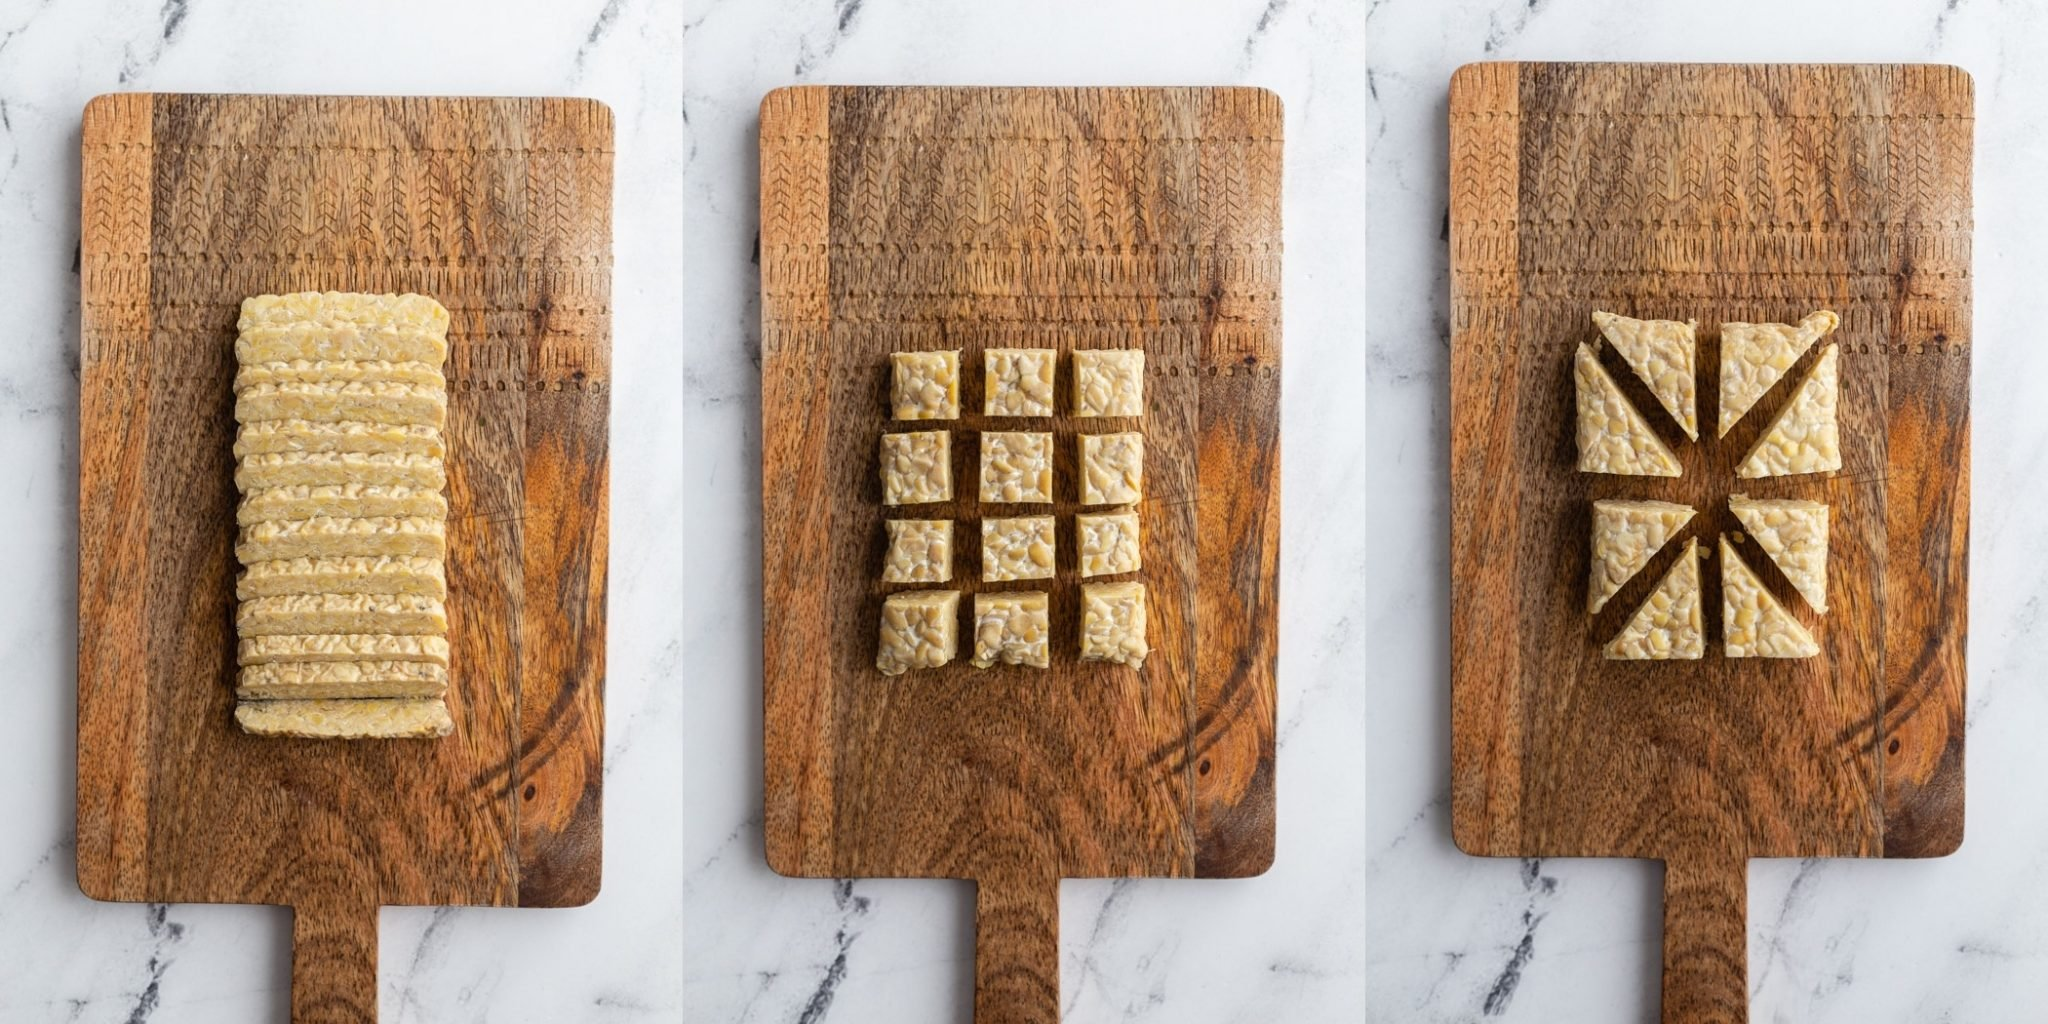 collage of three side by side images. First image is thinly sliced tempeh on a cutting board, second image is cubed tempeh on a cutting board, third image is triangular tempeh on a cutting board